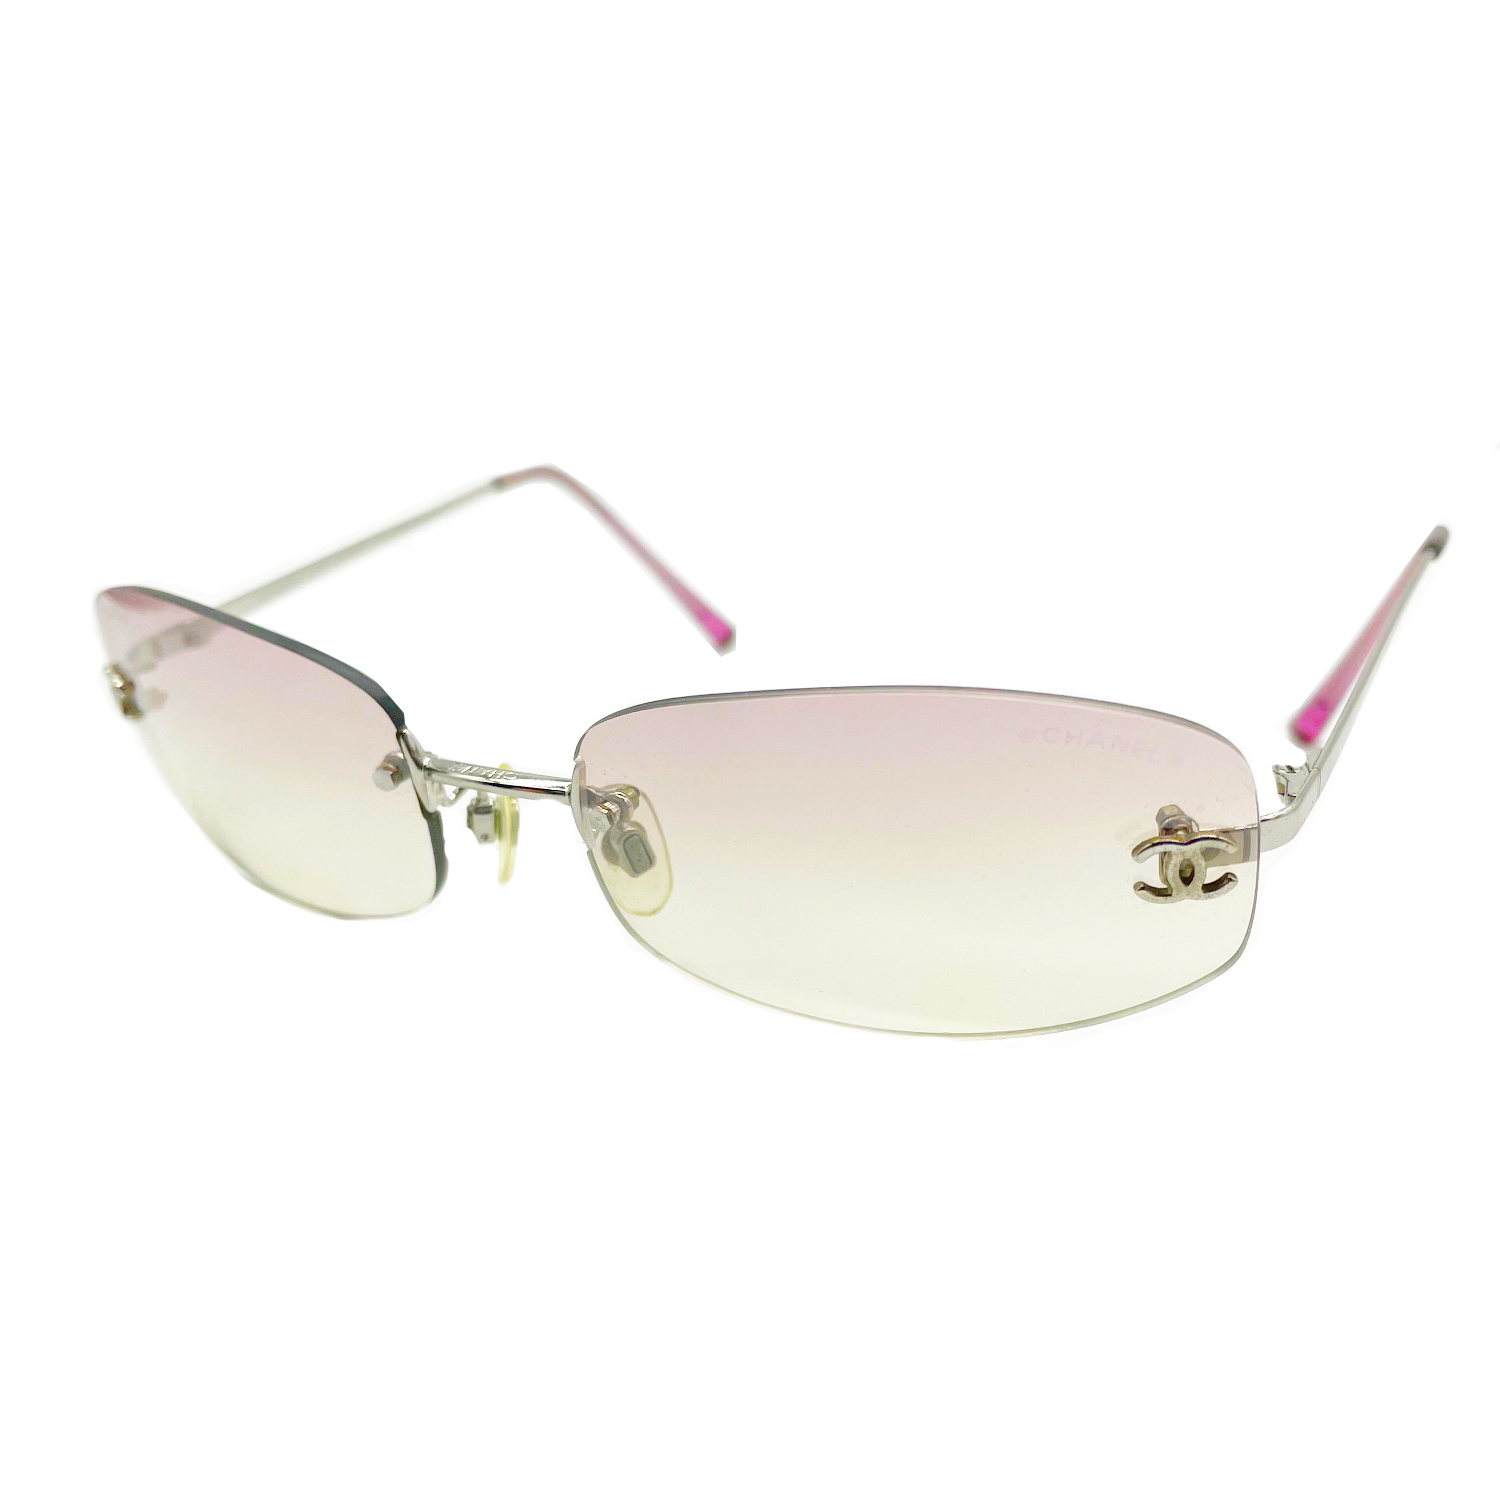 Vintage Chanel Rimless Ombre Sunglasses in Baby Pink   NITRYL